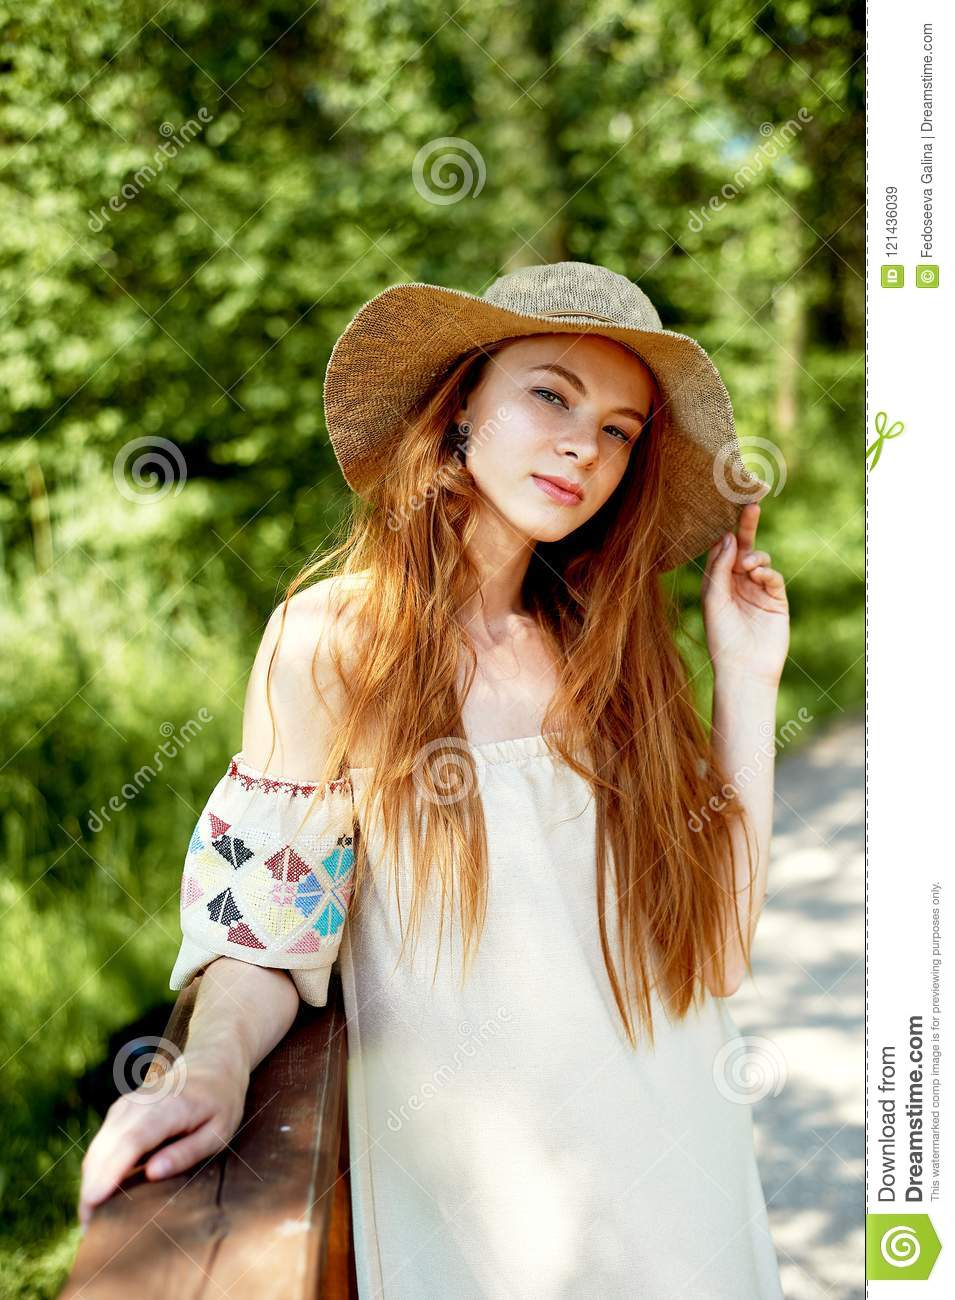 A Sophisticated Red Haired Girl In A Simple Linen Dress In